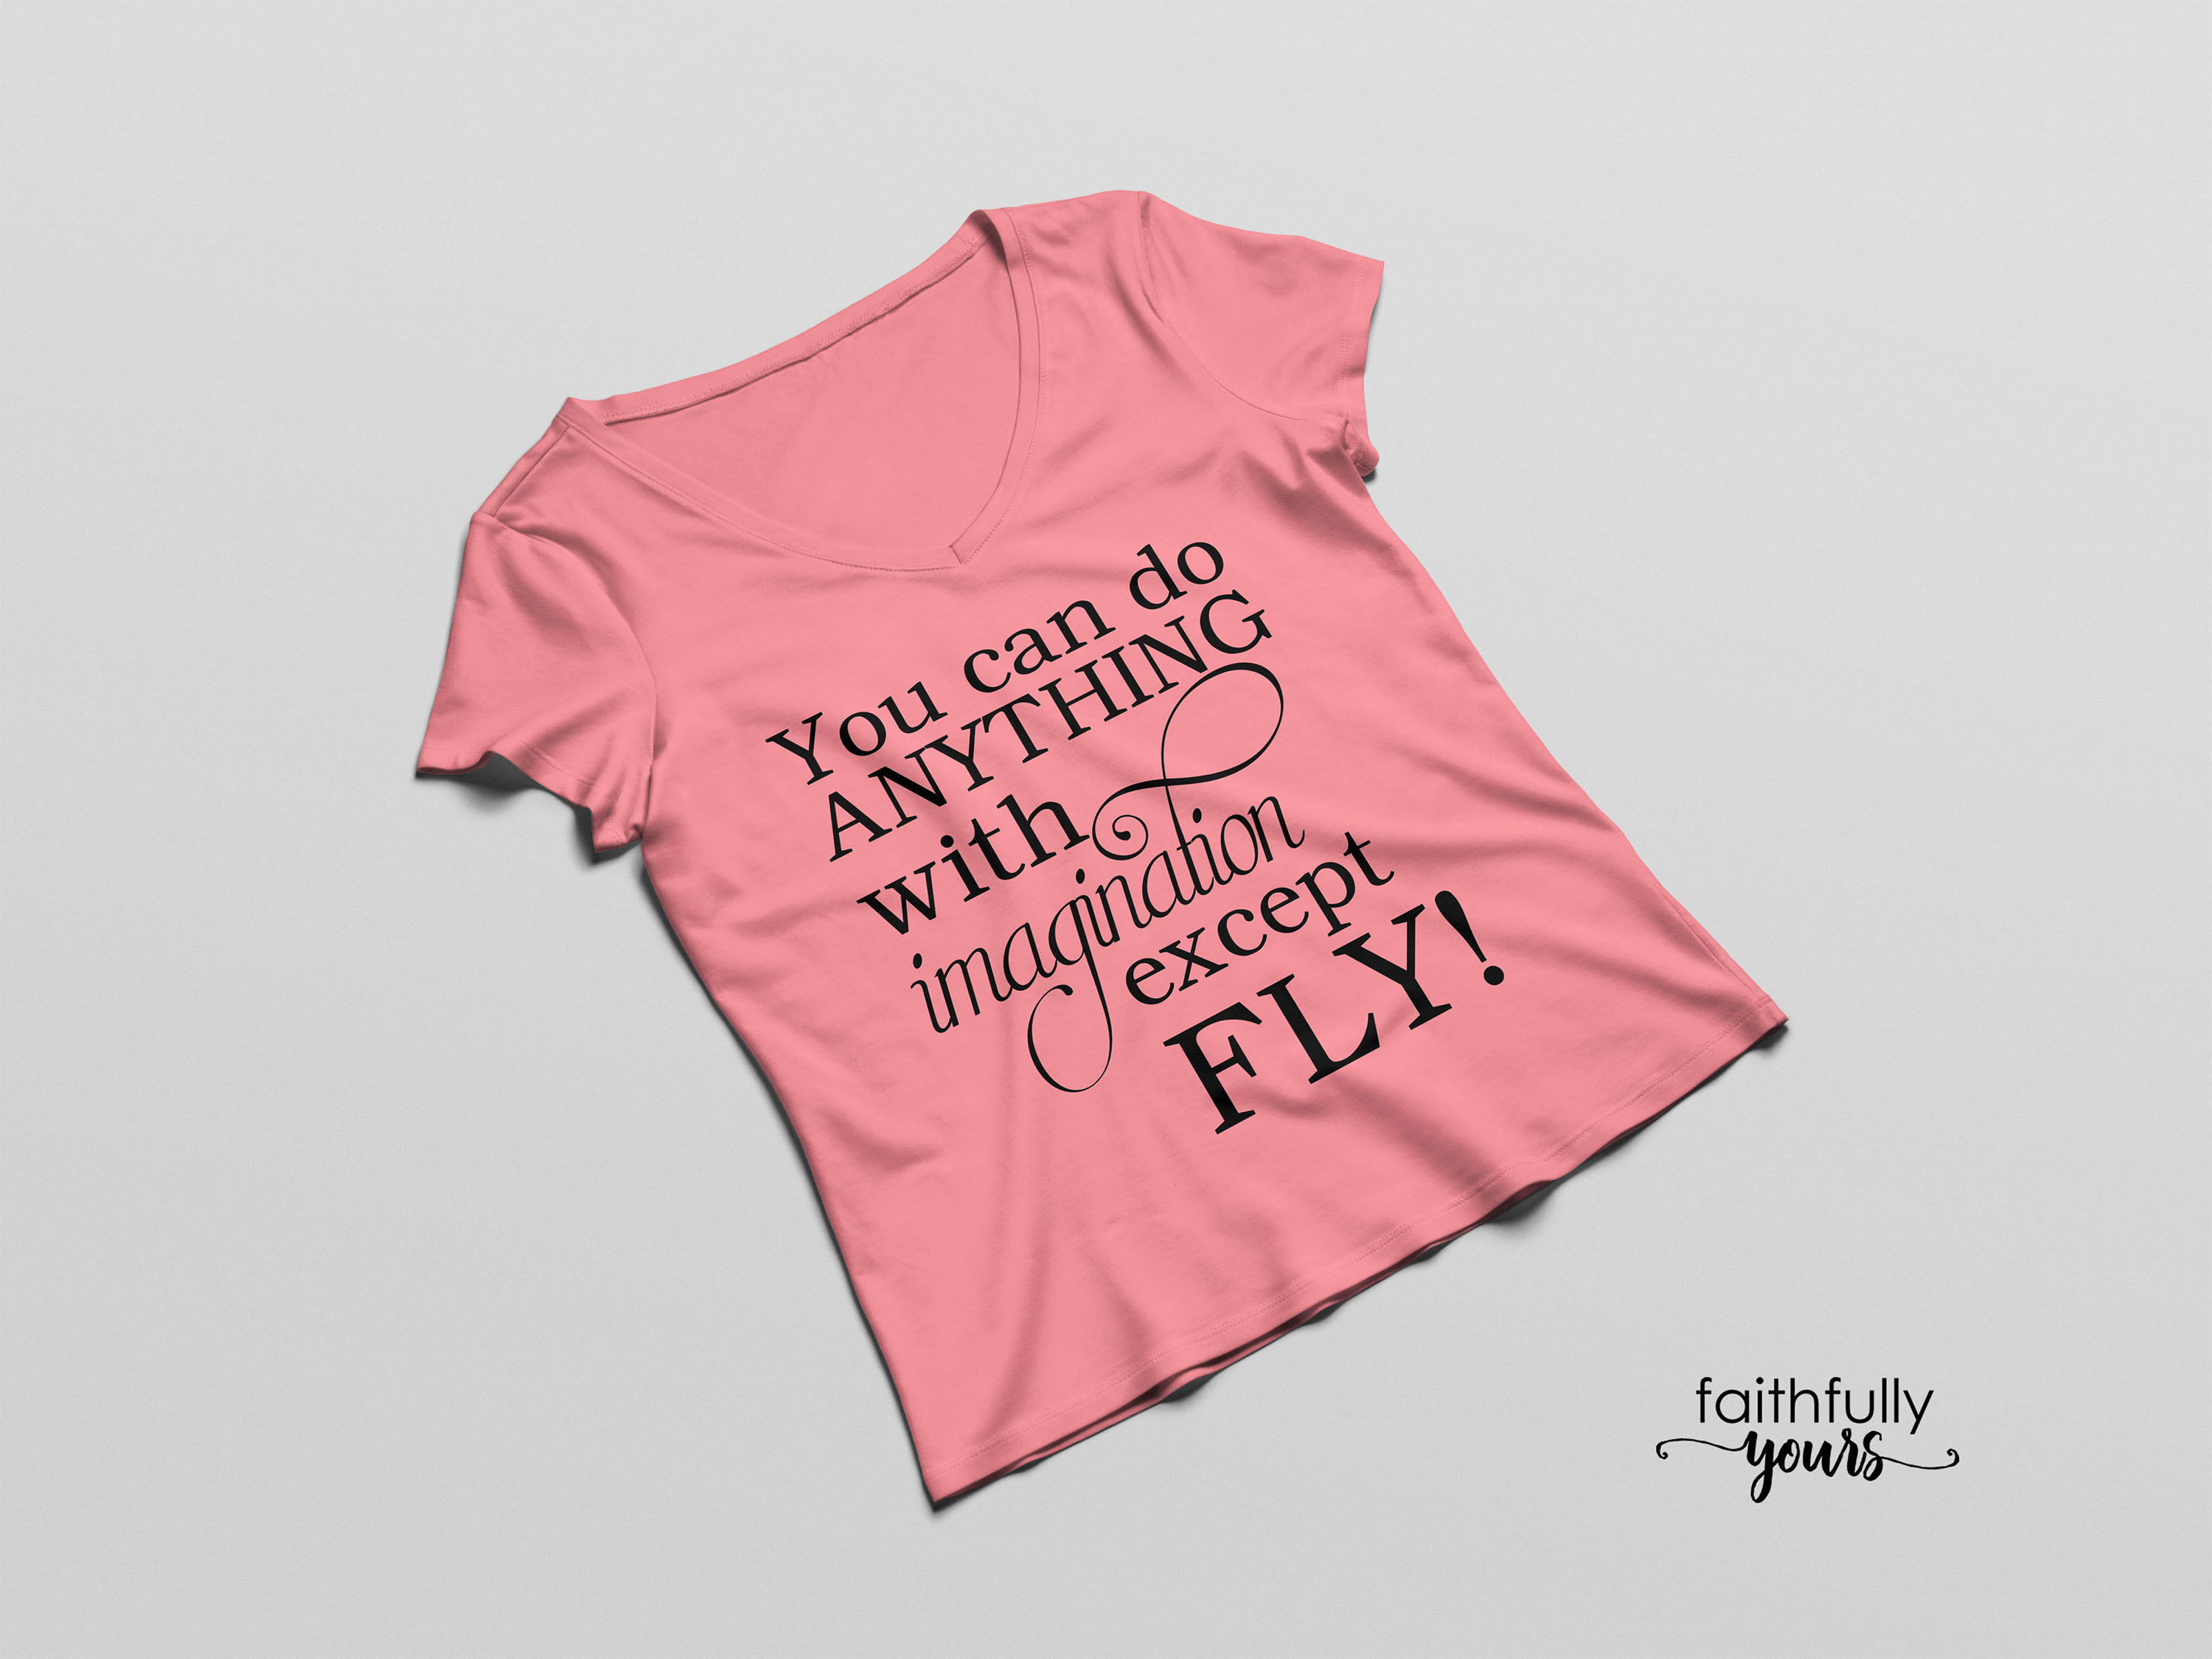 You can do anything with imagination except FLY! funny svg example image 4